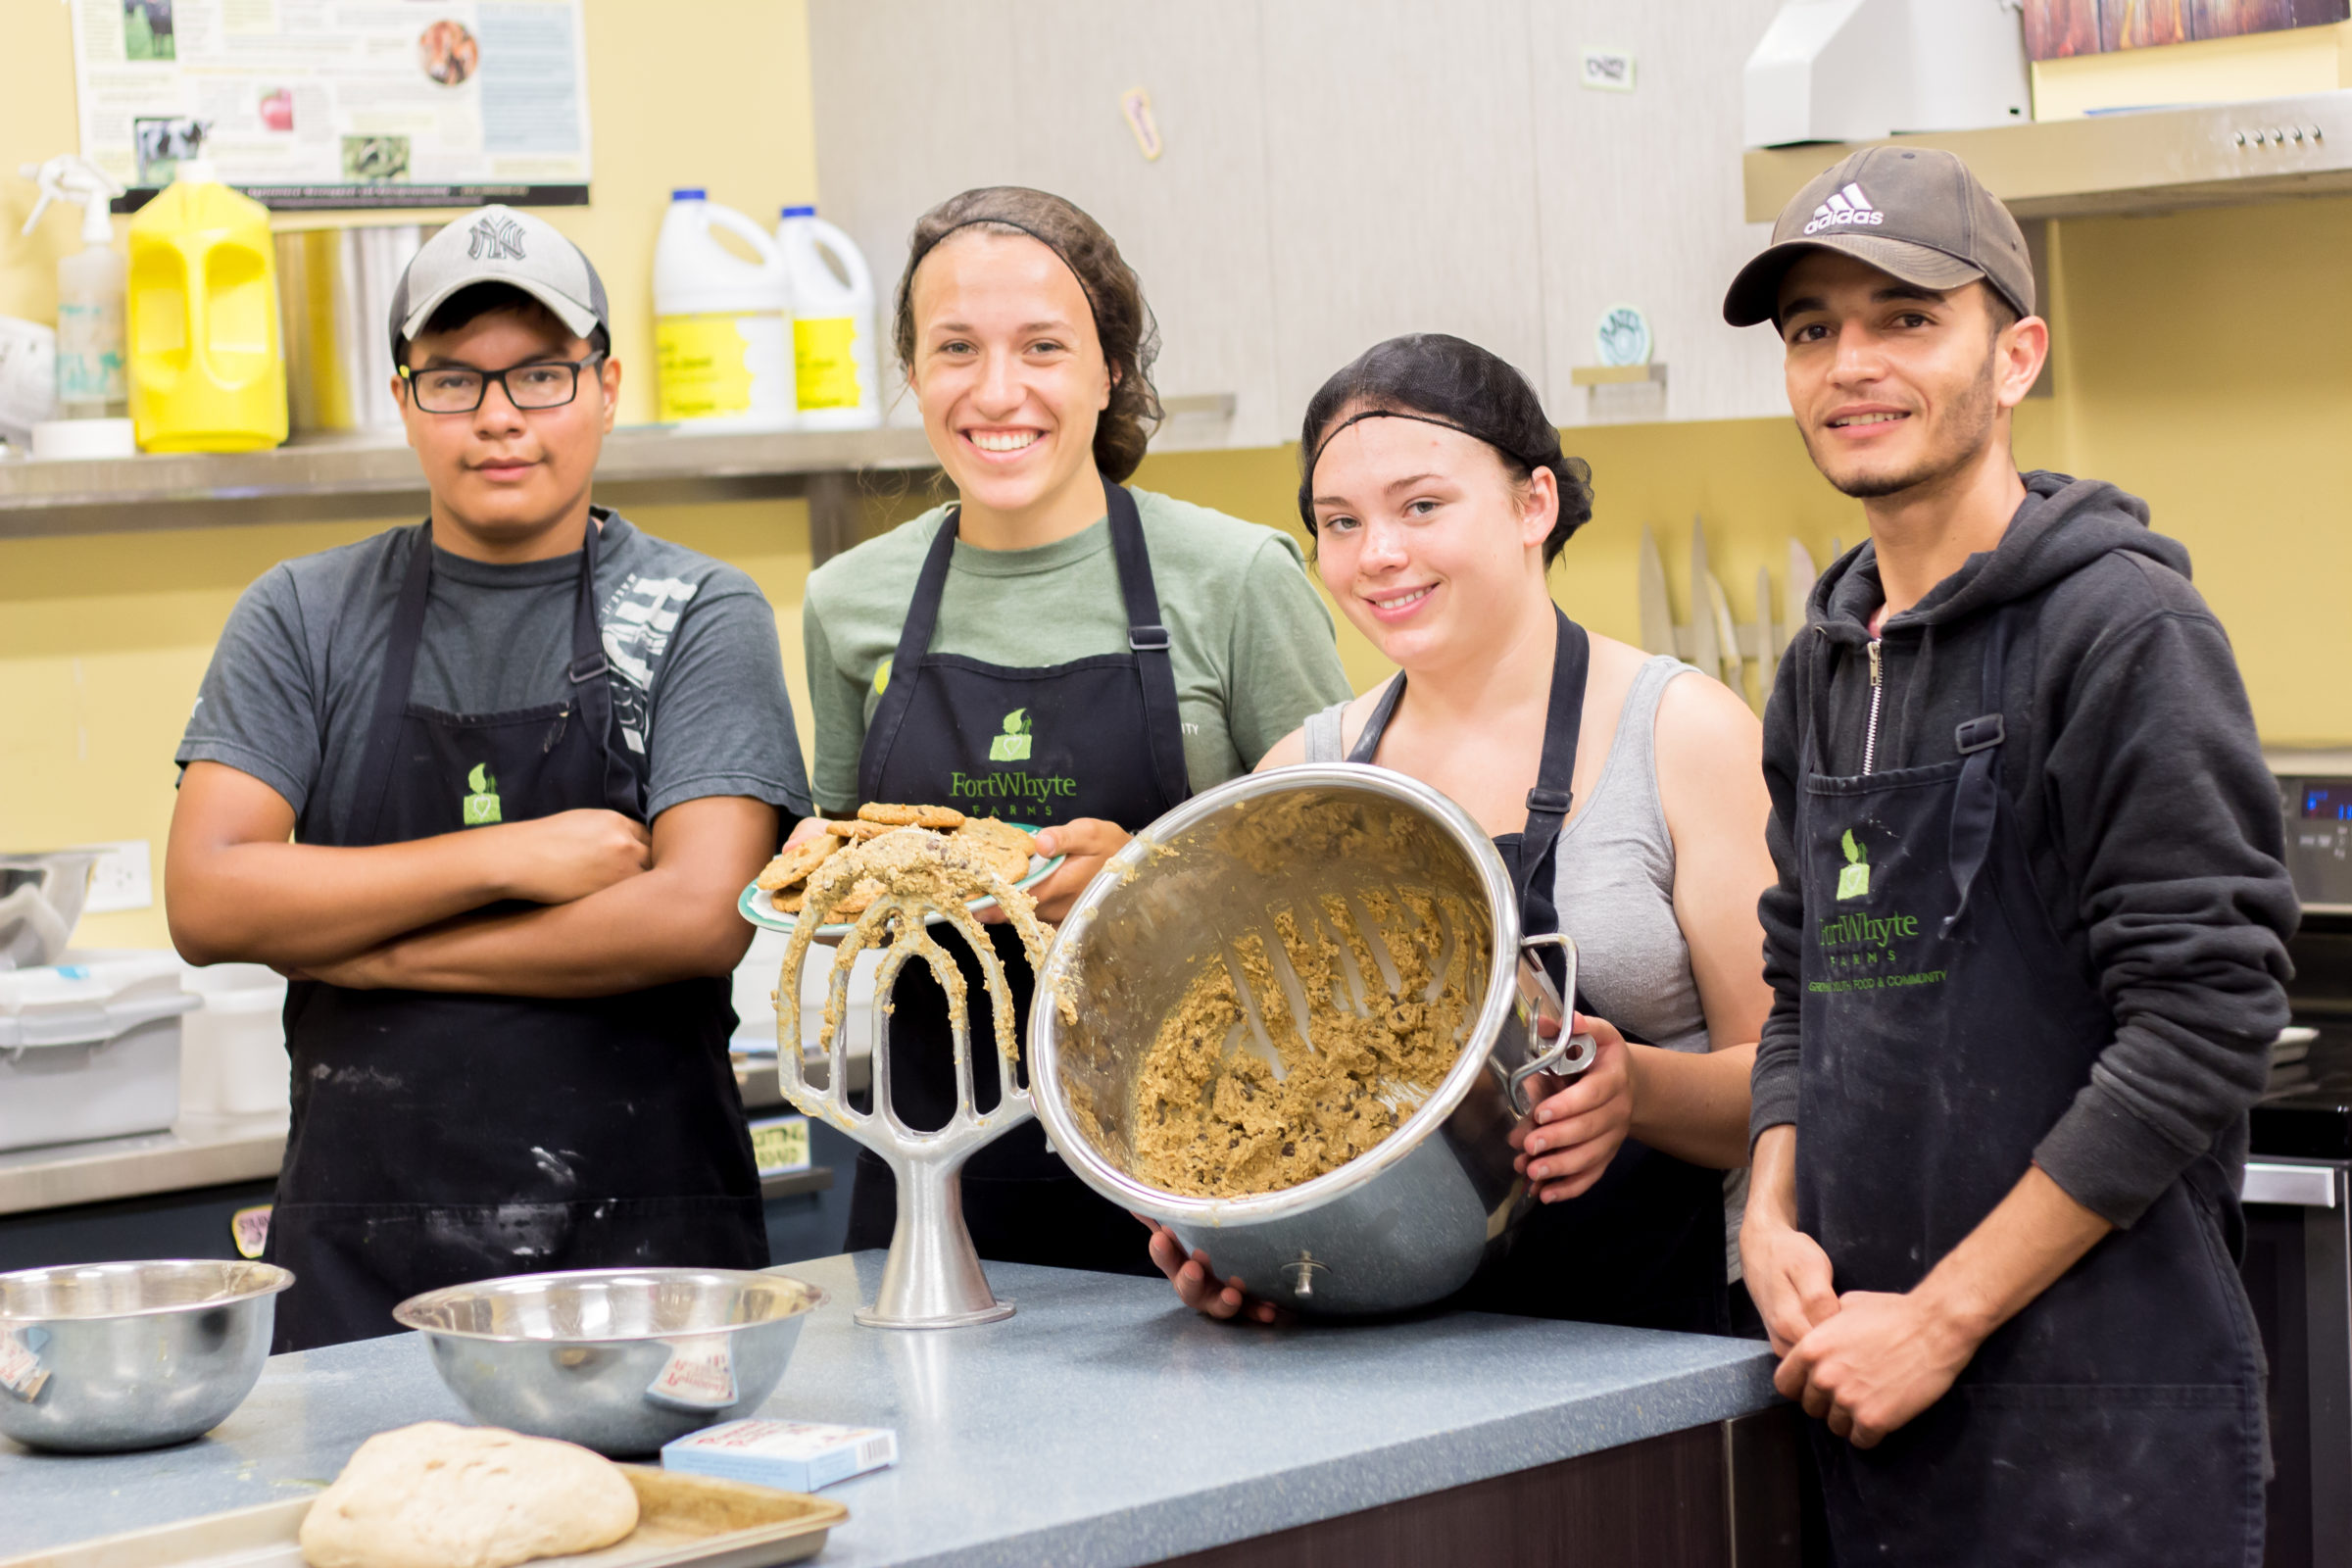 Four youth smiling as they cook in the FortWhyte Farms kitchen